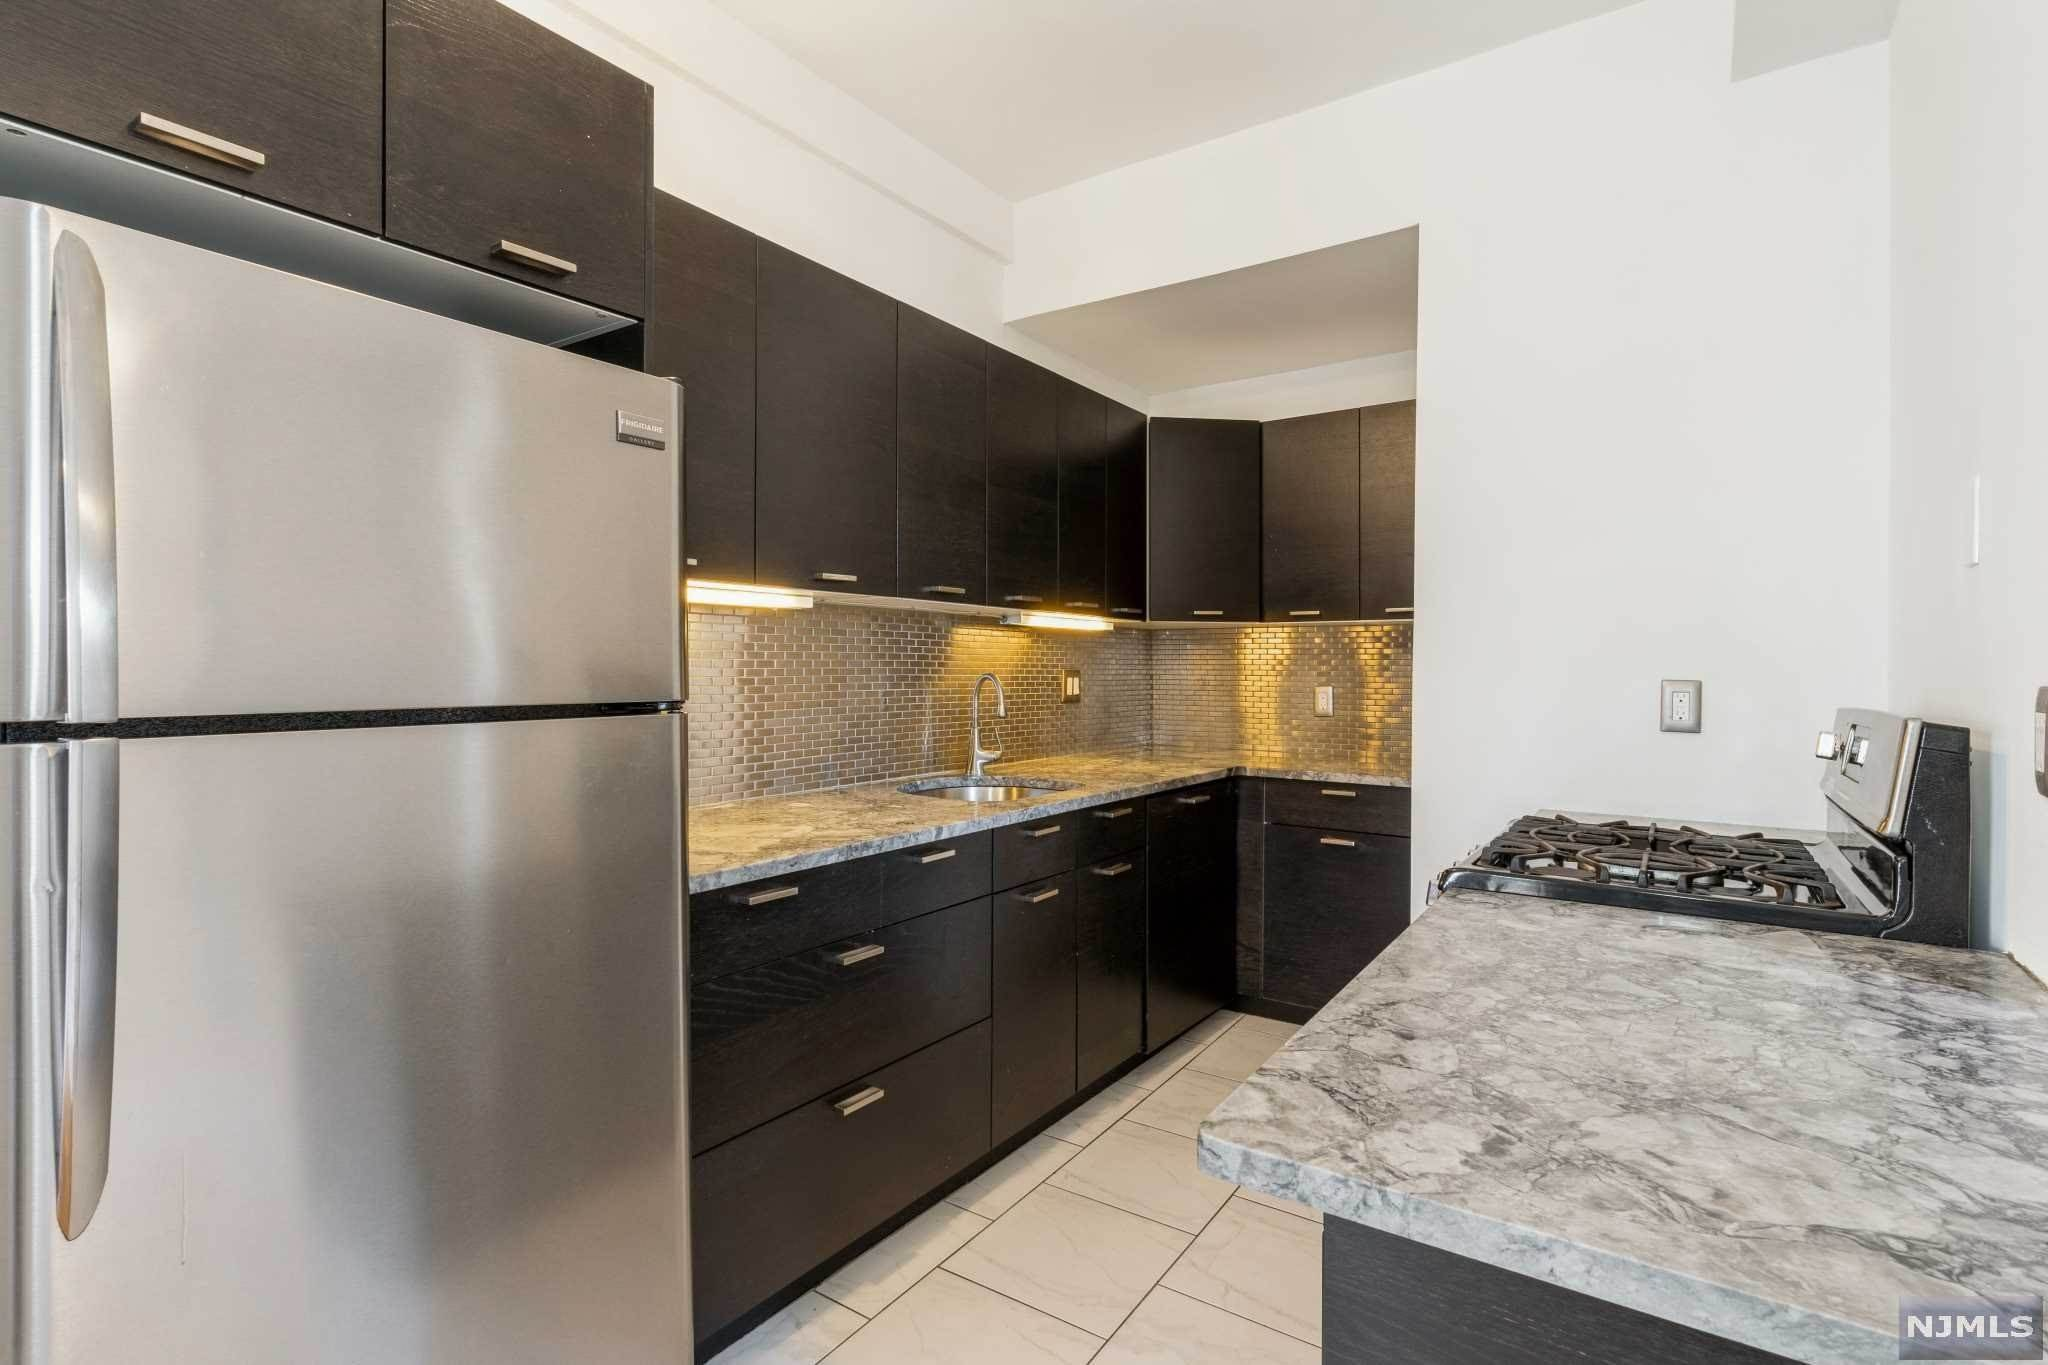 Rental Communities for Rent at 363-377 Mount Prospect Avenue #3AW Newark, New Jersey, 07104 United States